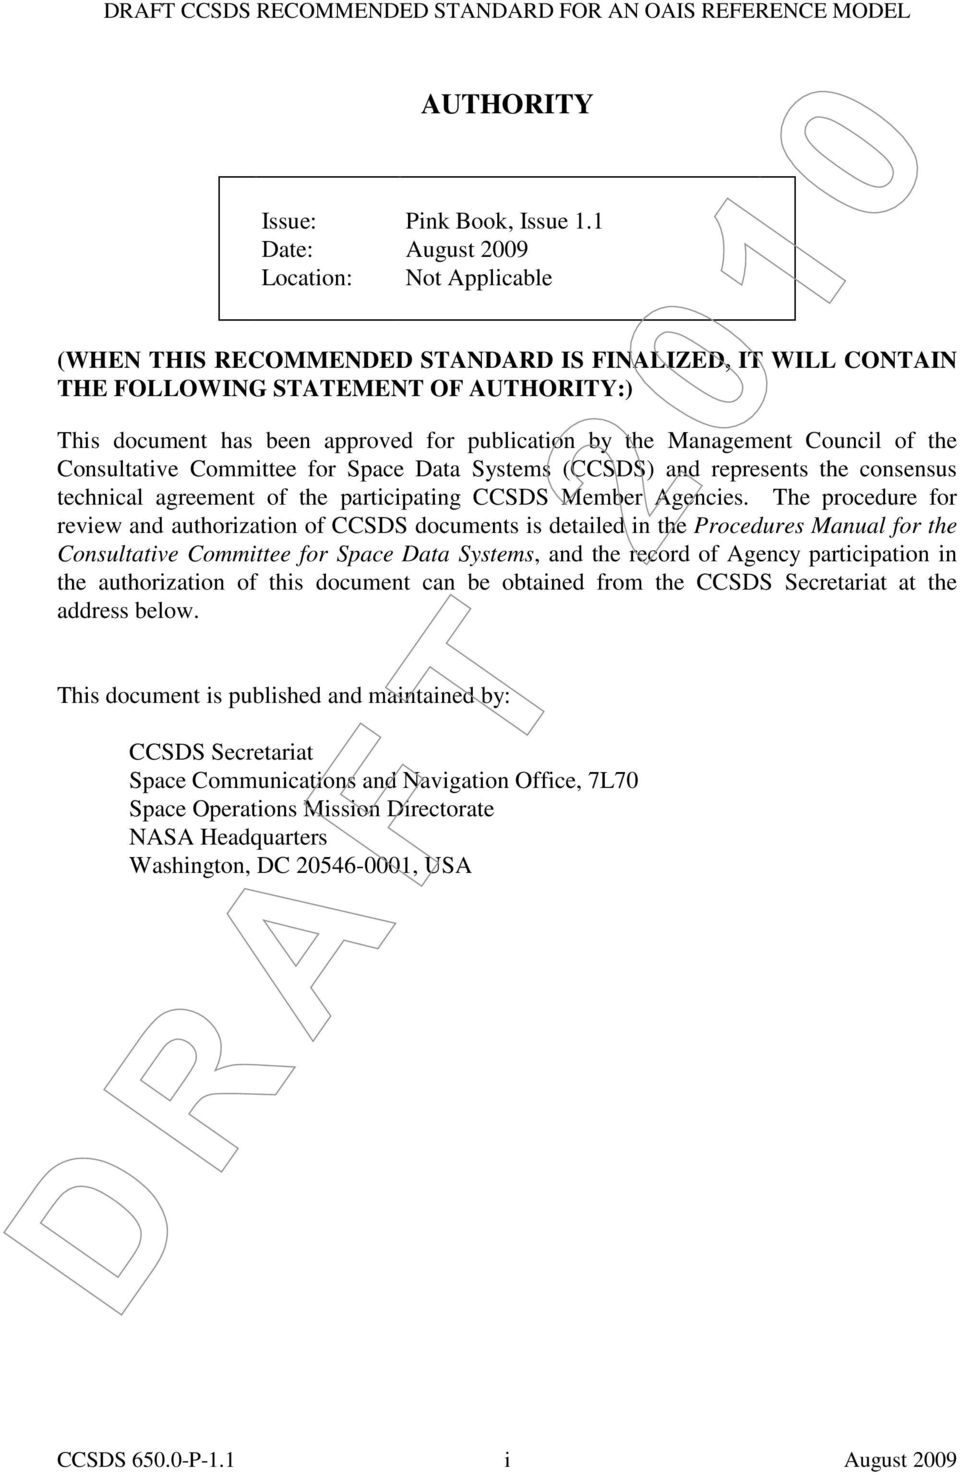 the Management Council of the Consultative Committee for Space Data Systems (CCSDS) and represents the consensus technical agreement of the participating CCSDS Member Agencies.